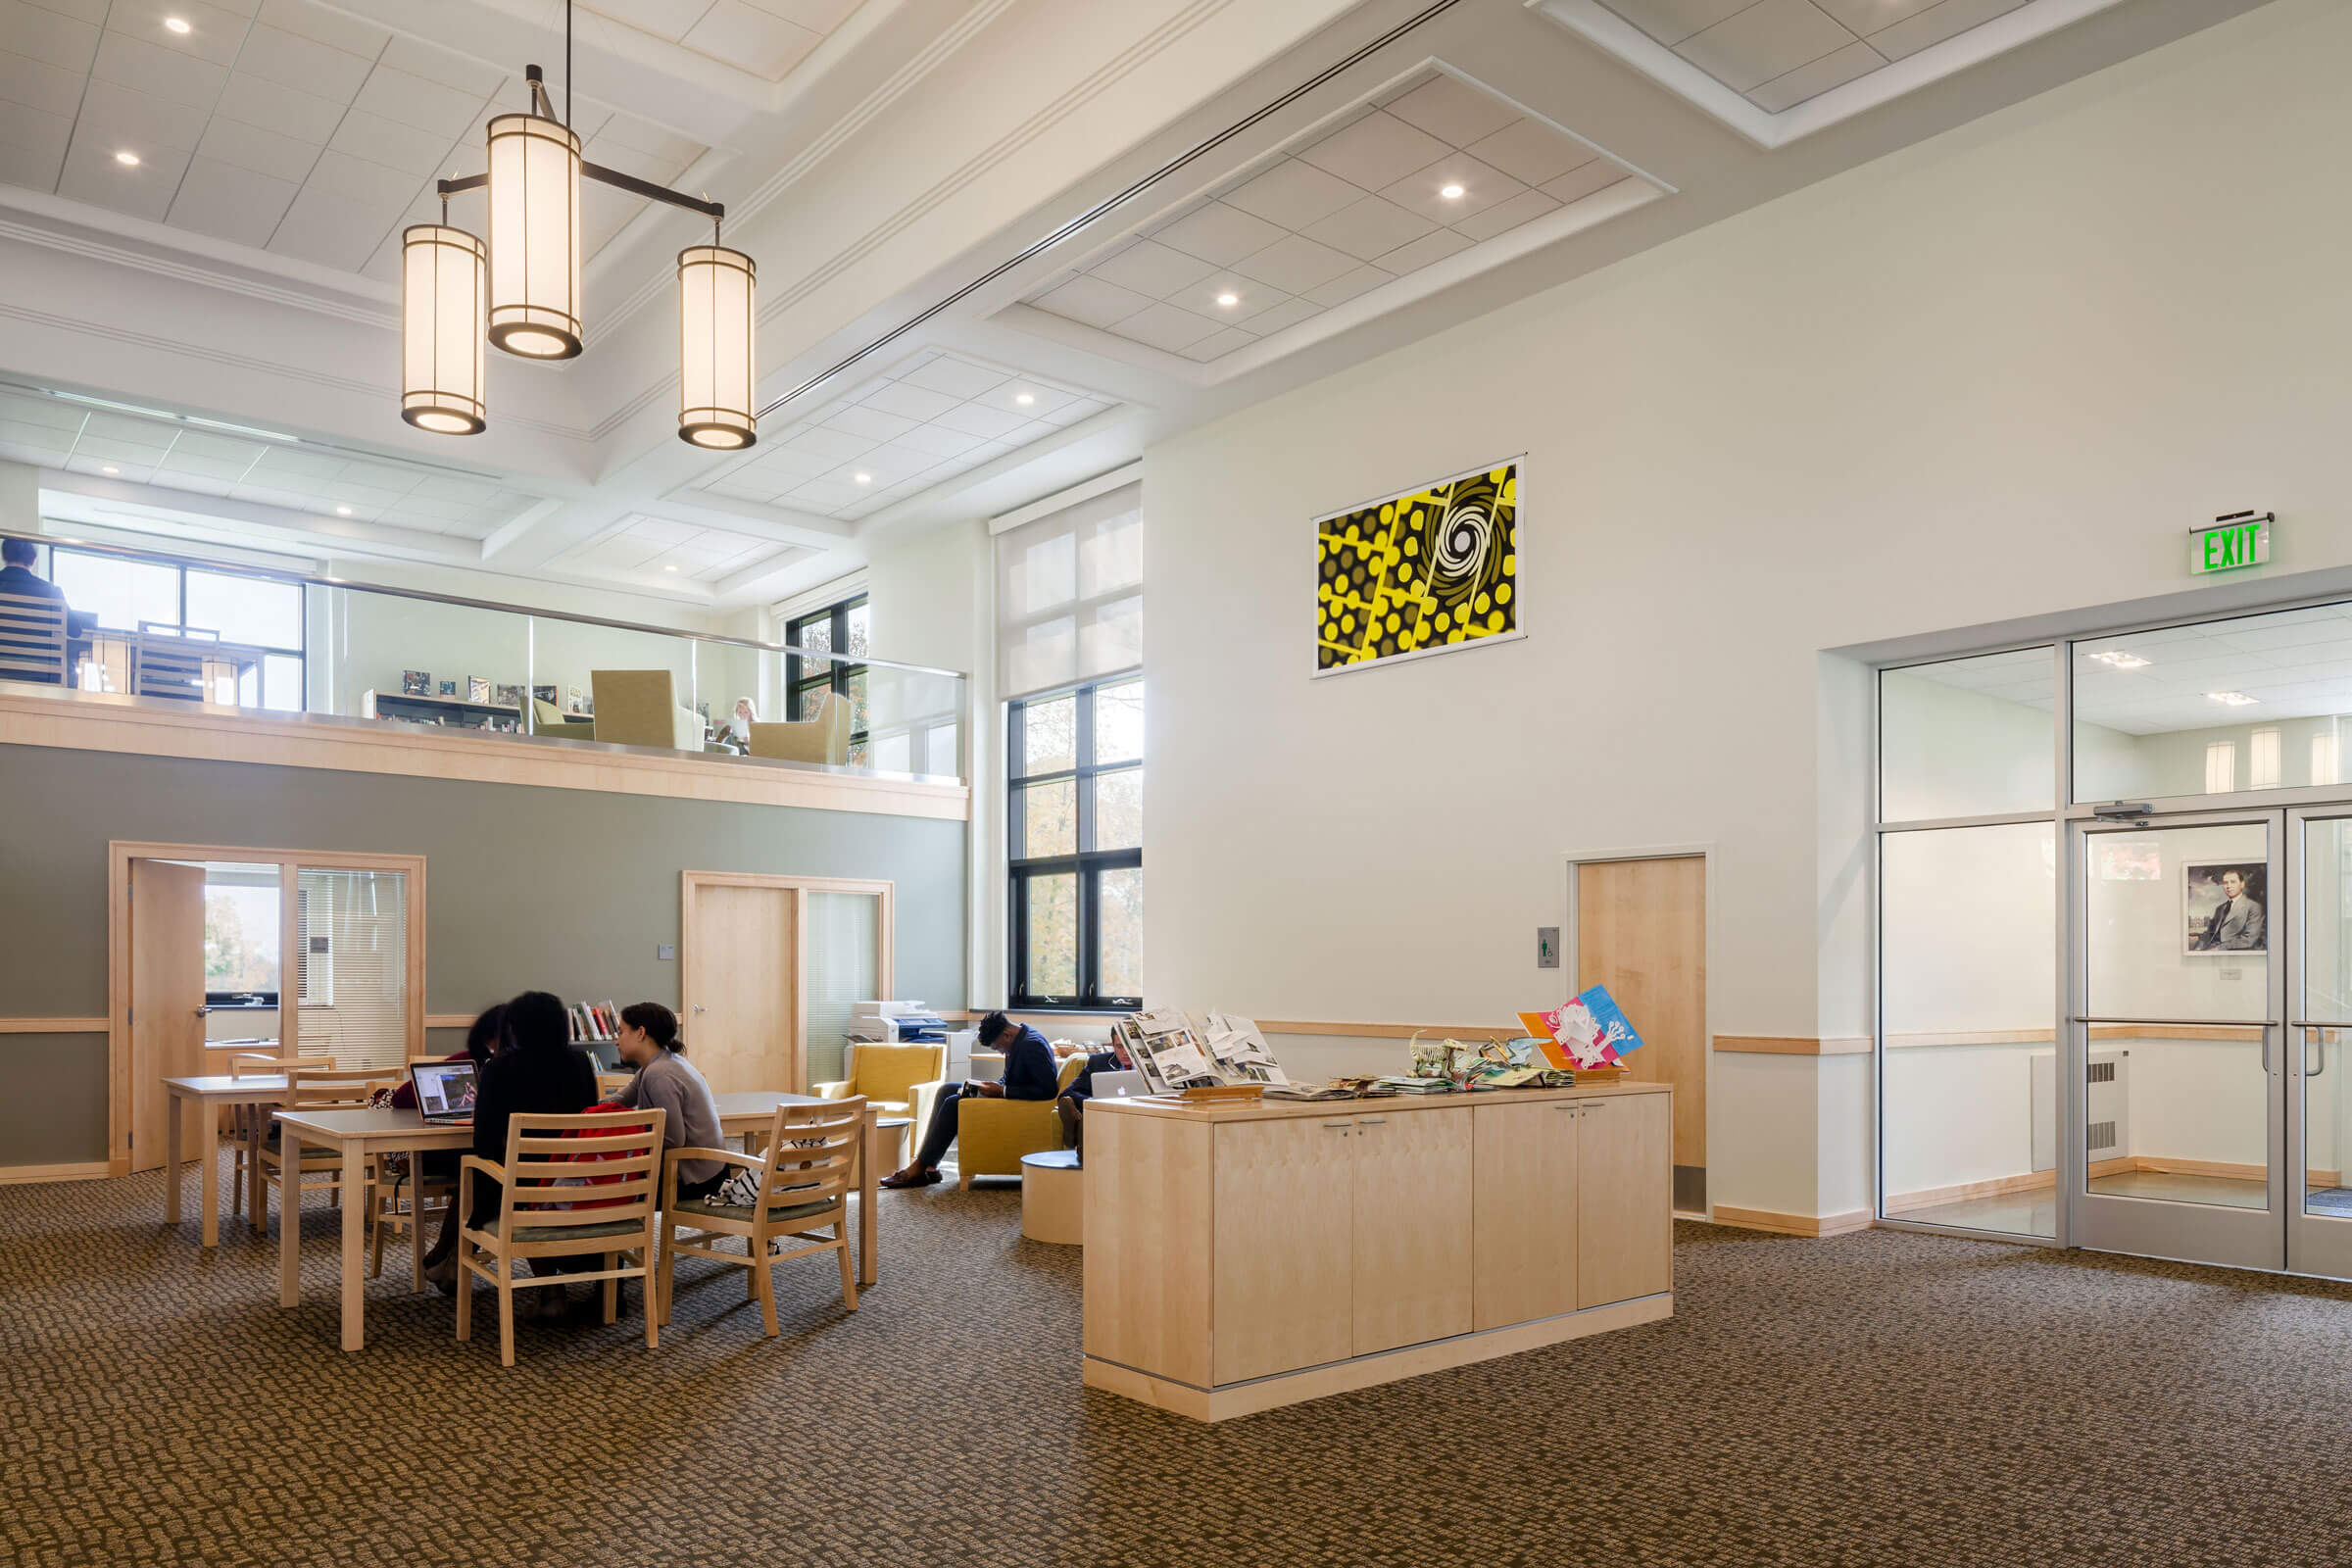 Finegold Alexander's renovation of Geier Library at Berkshire School allows for the display of student artwork in a clean, contemporary setting, as shown in this interior view of the library